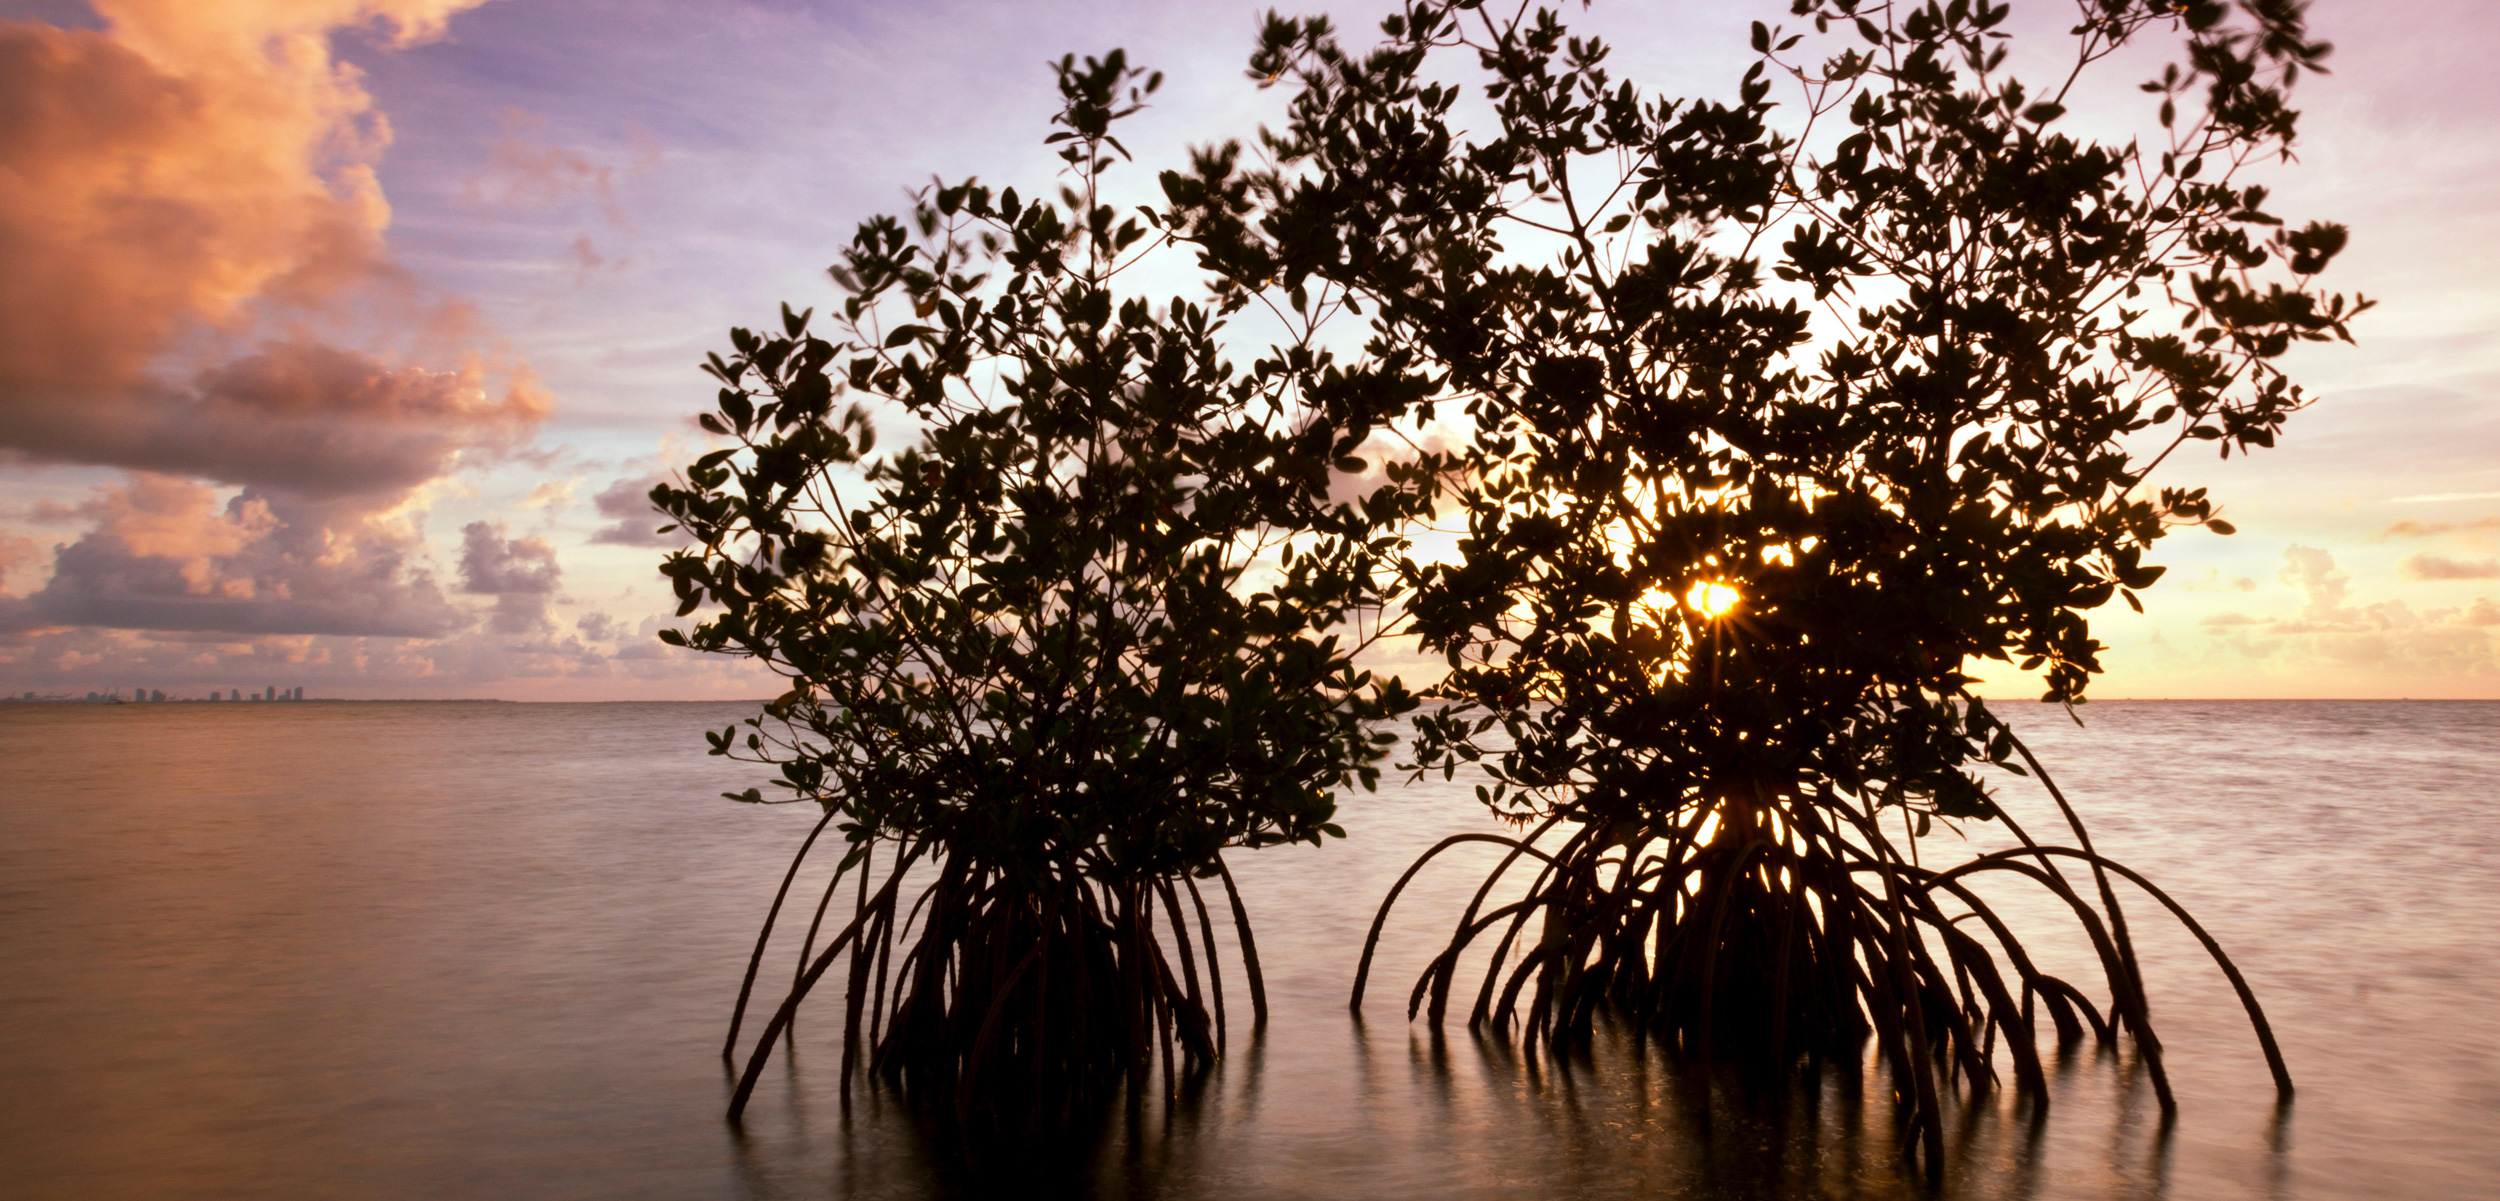 Mangroves are spreading throughout coastal Florida—and that's not necessarily a good thing. Photo by Constance Mier/Alamy Stock Photo